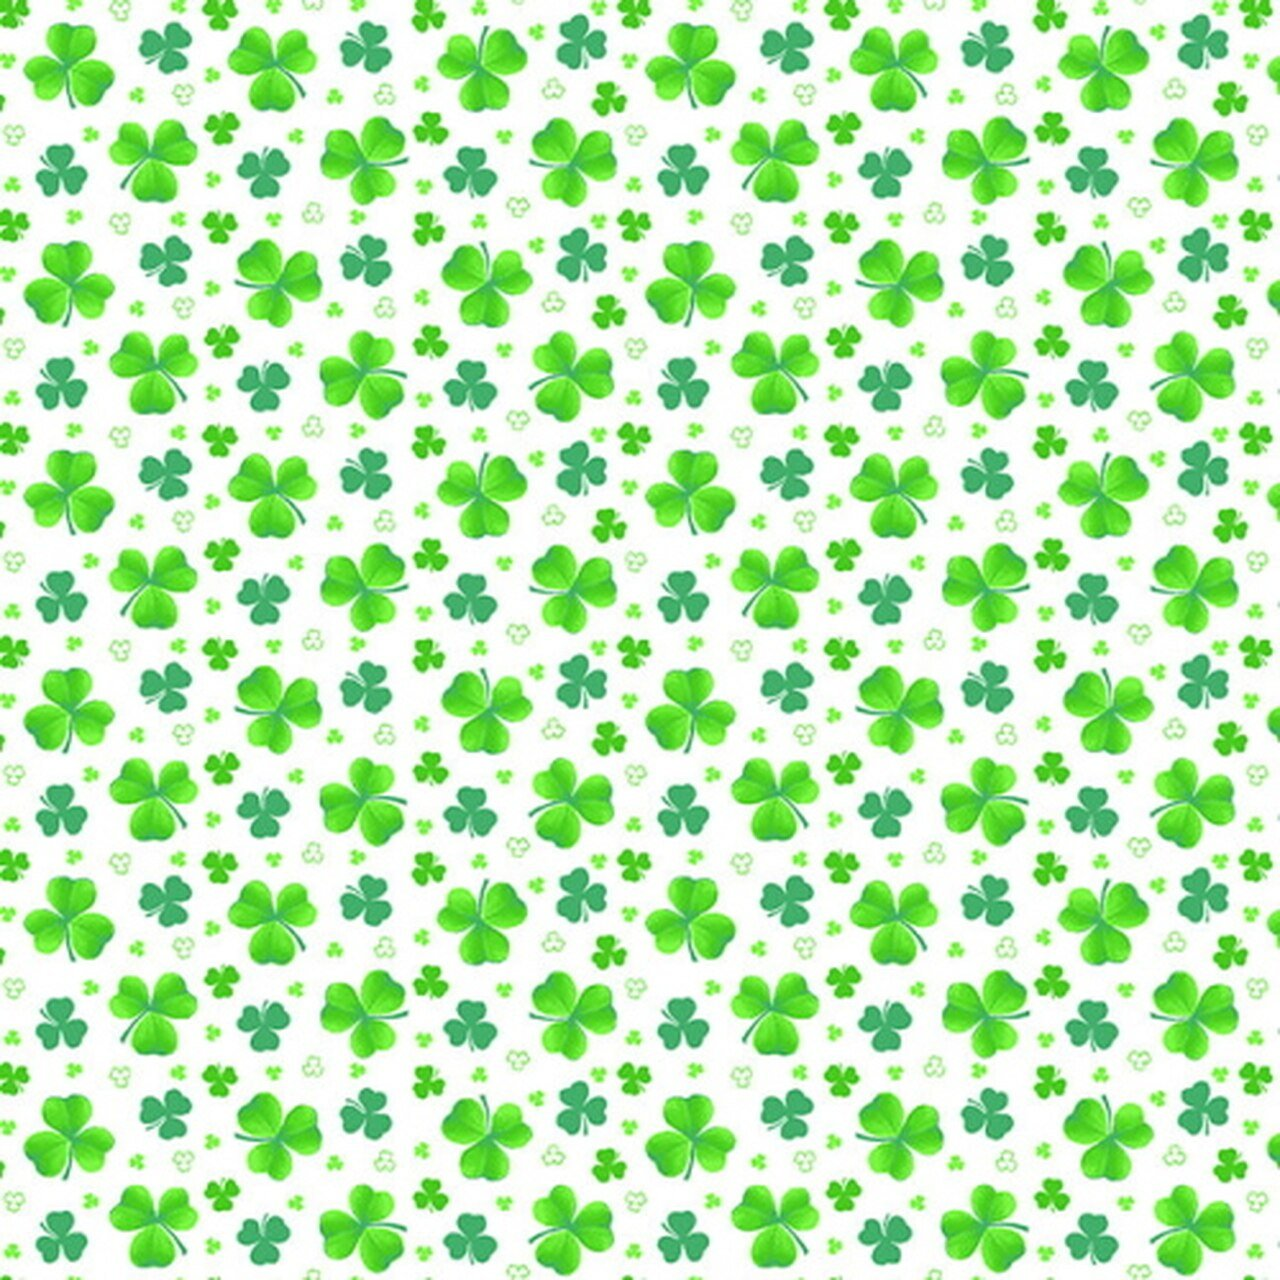 Pot of Gold 9368-16 White Tossed Clovers